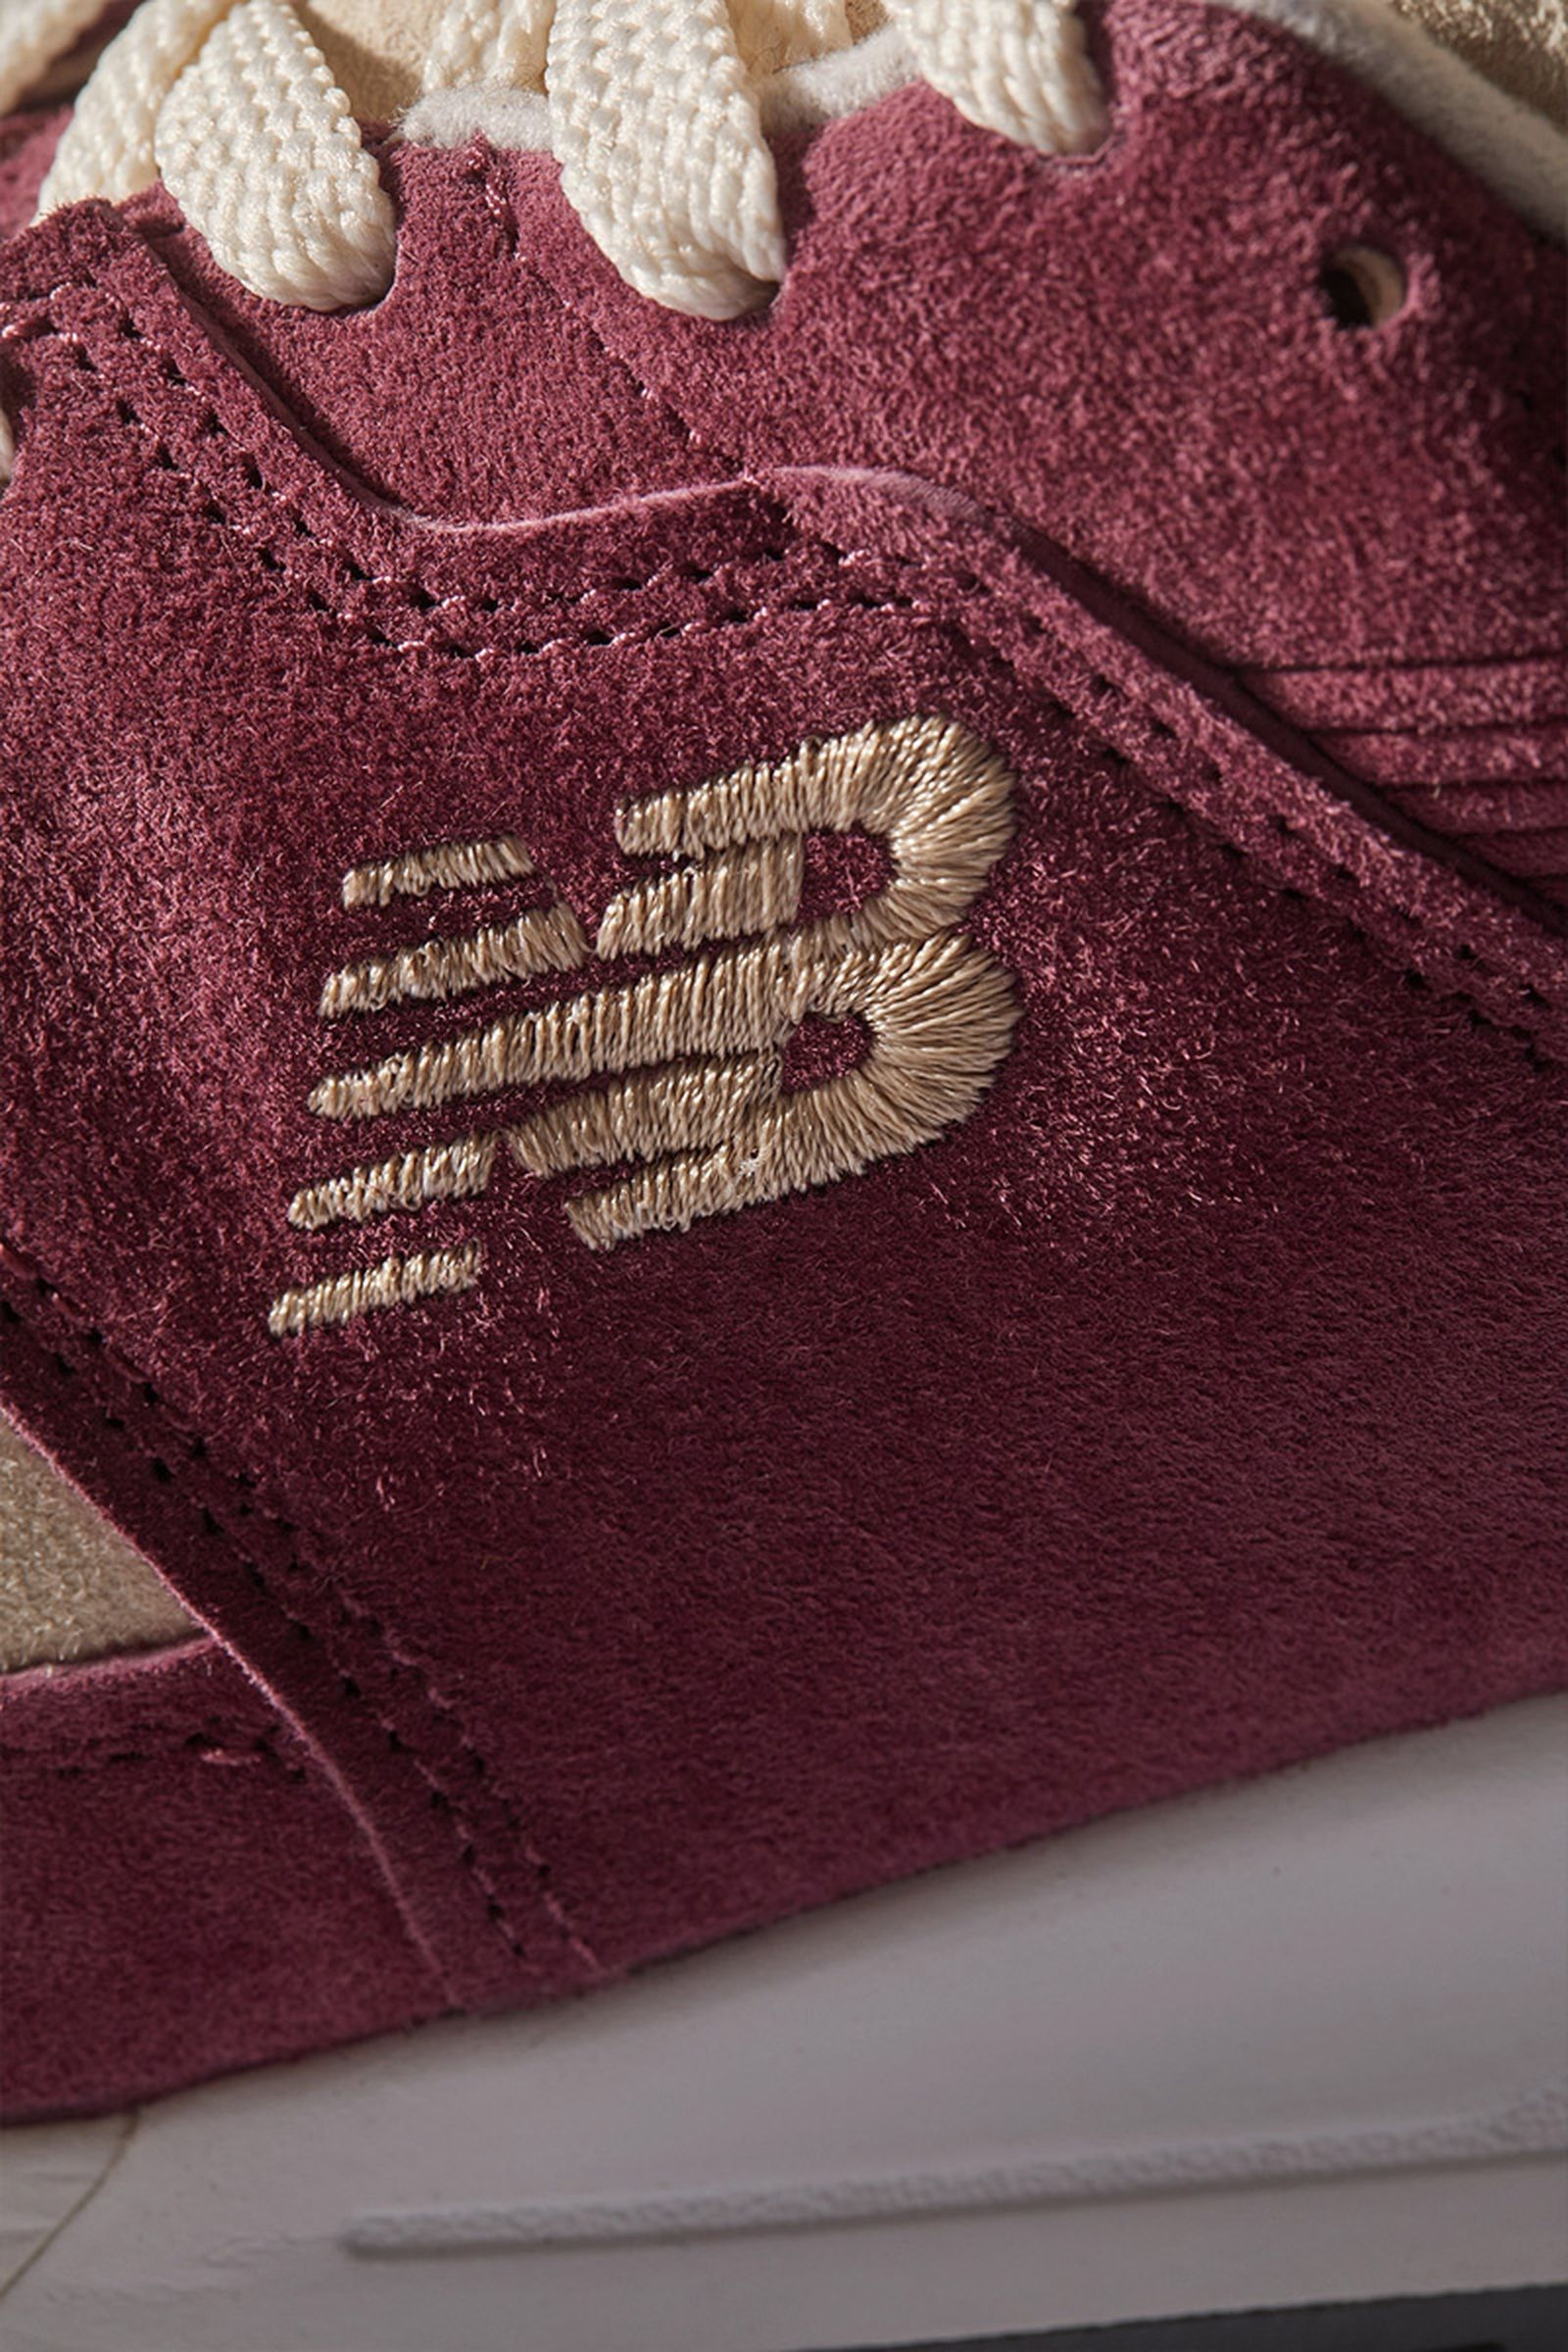 todd-snyder-new-balance-triborough-997-release-date-price-09